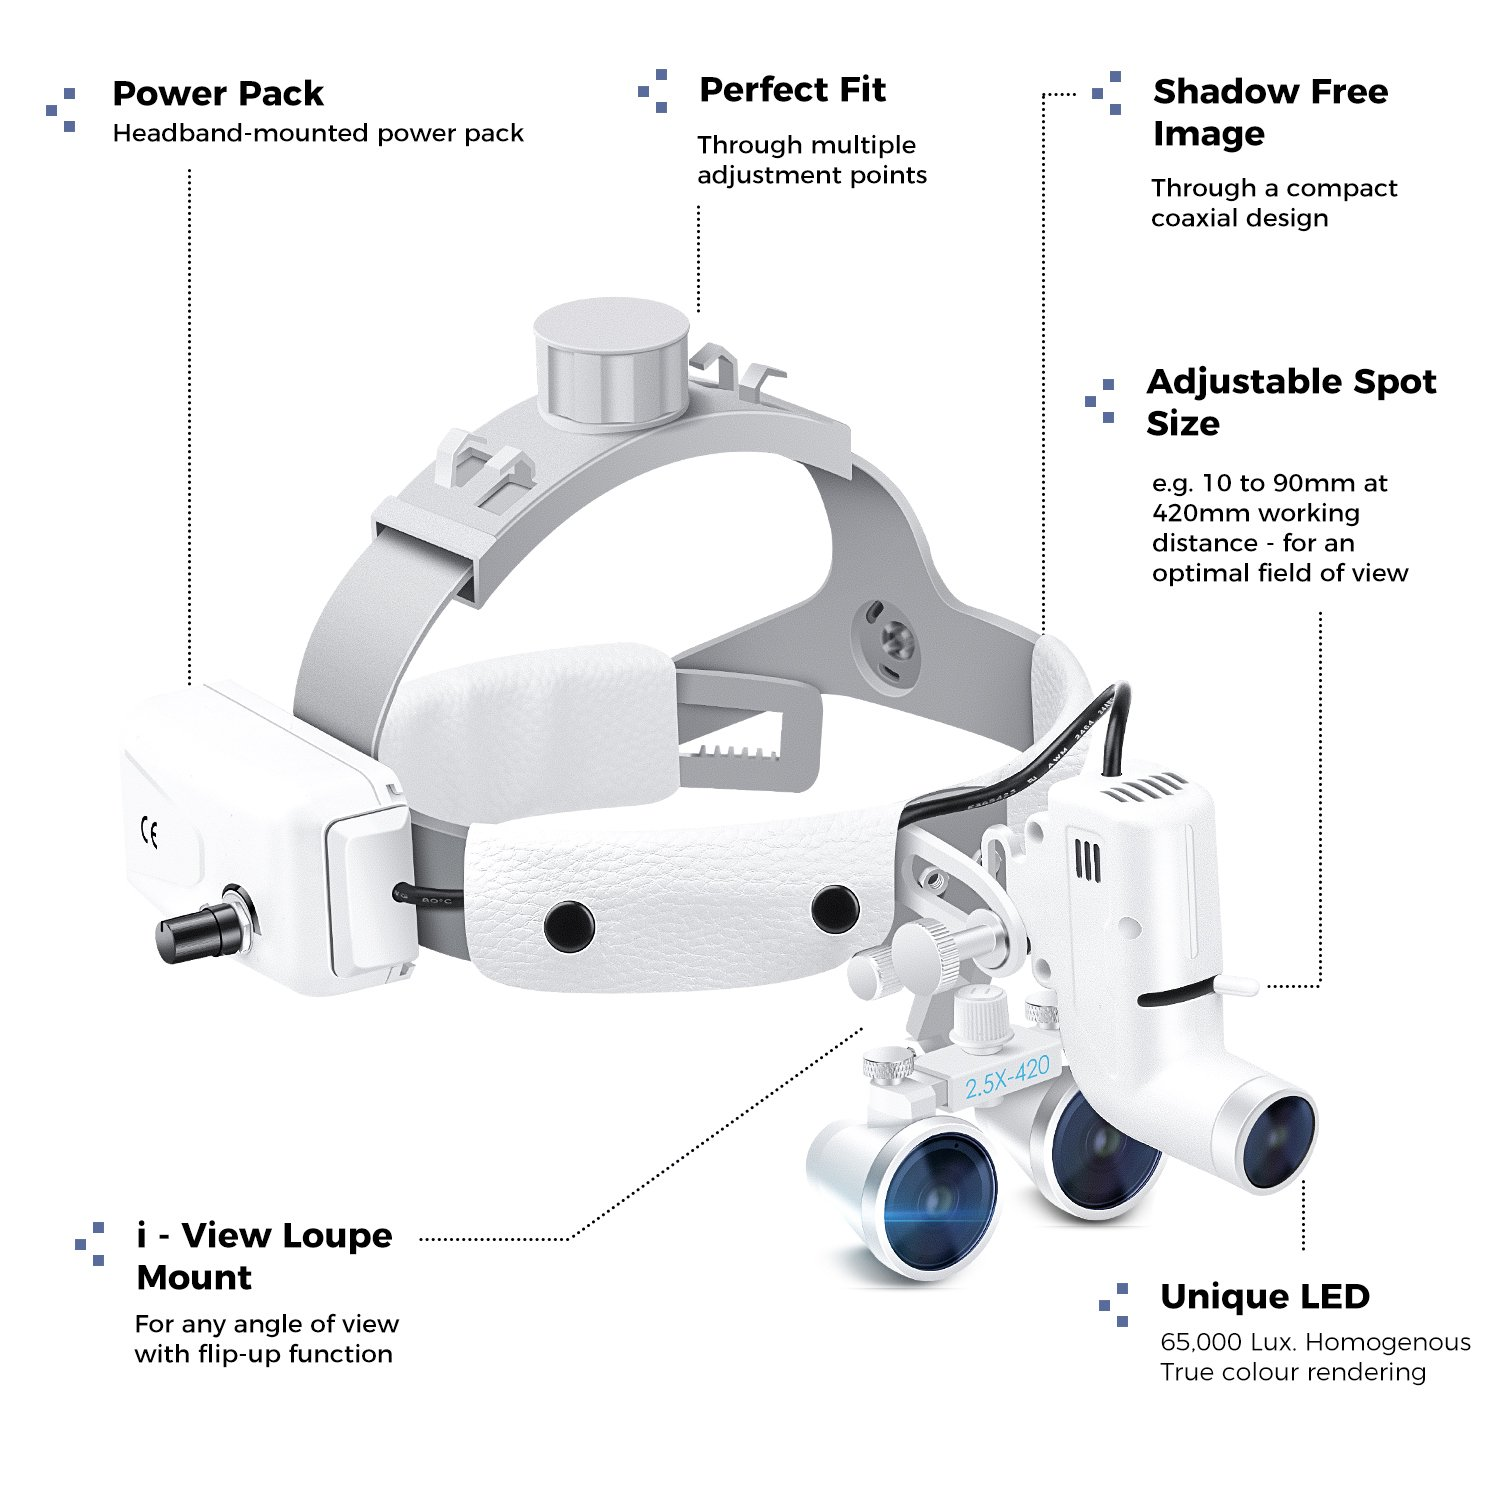 Dental Surgical Binocular Headband Loupes with Headlights, Medical Magnifier with 5W LED Headlamp Lights for Surgery Vascular, Working Distance: R(420 mm), Magnification: 2.5X by VOUO (Image #5)